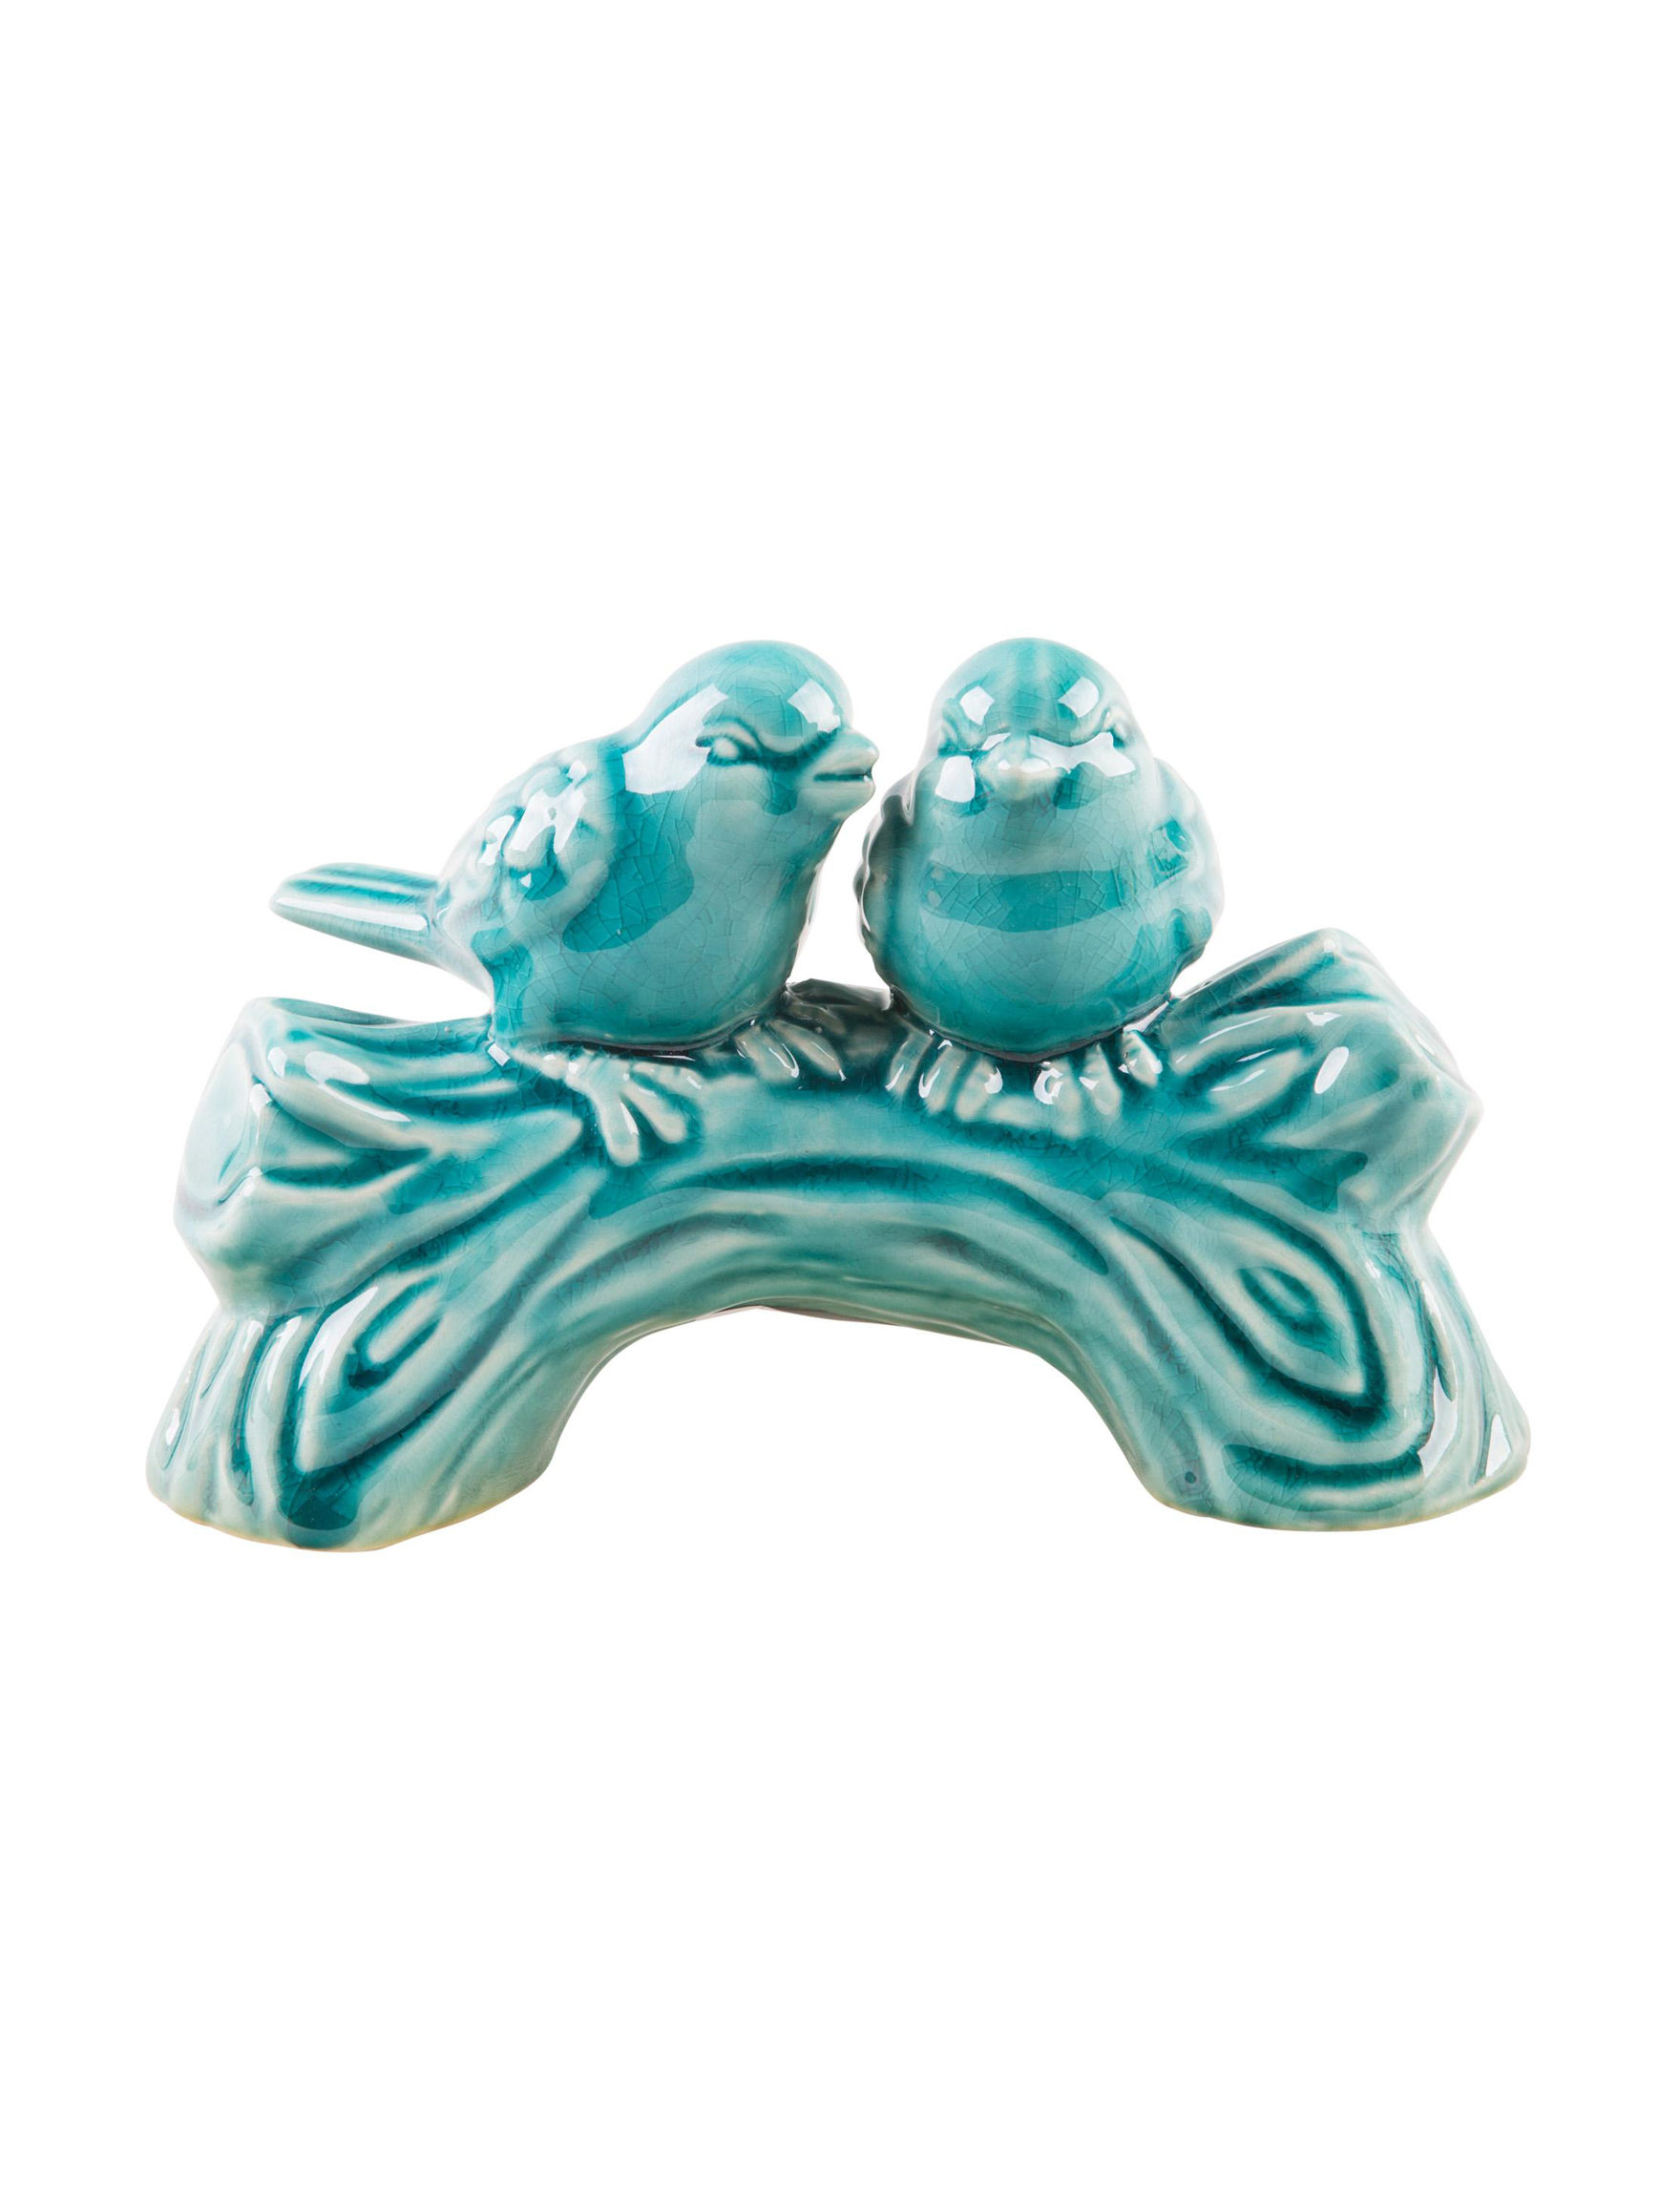 Home Essentials Turquoise Garden Decor & Planters Home Accents Outdoor Decor